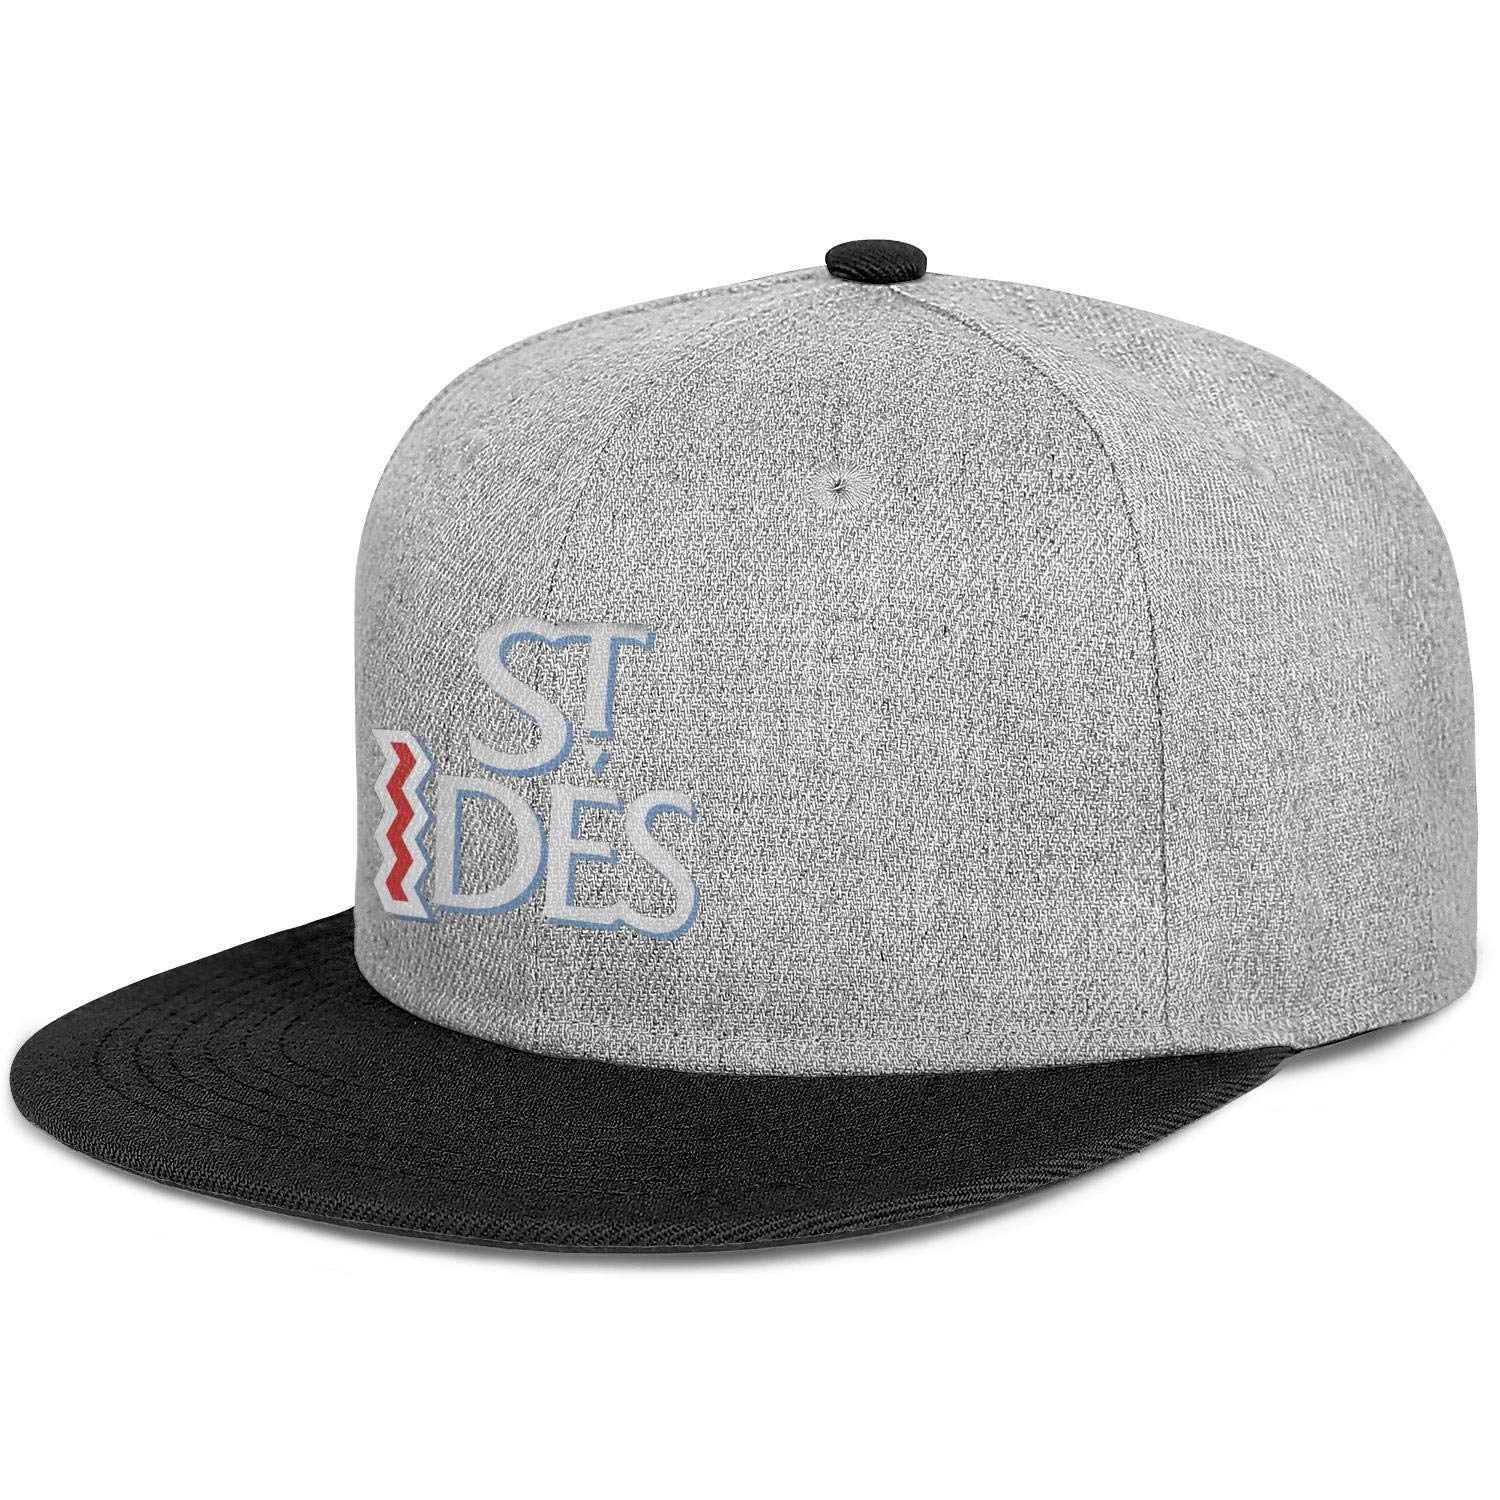 chenhou Unisex St.Ides Logo Hat Adjustable Fitted Dad Baseball Cap Trucker Hat Cowboy Hat